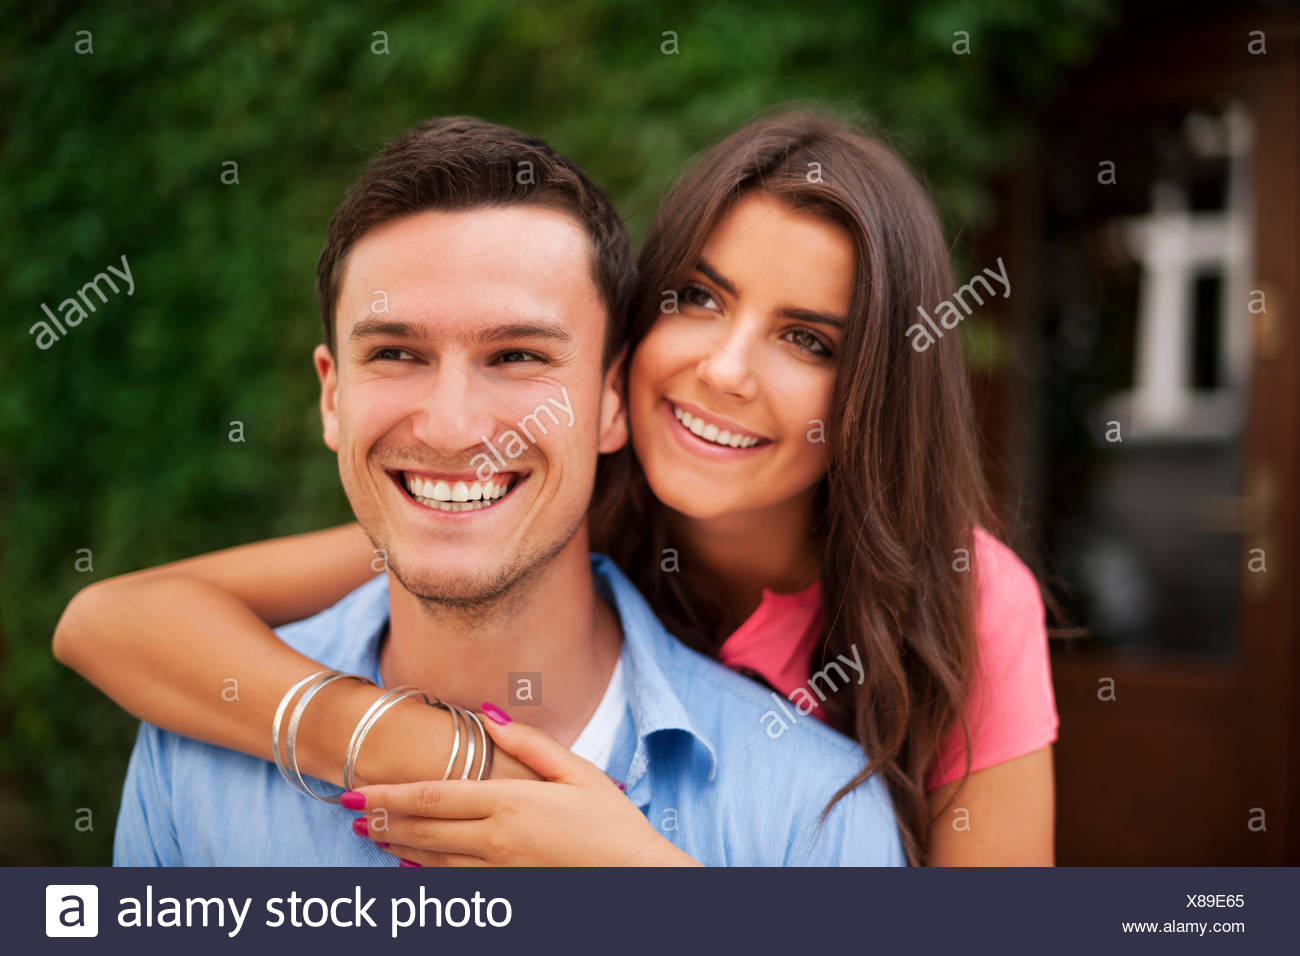 Cute couple looking at the same direction, Debica, Poland - Stock Image